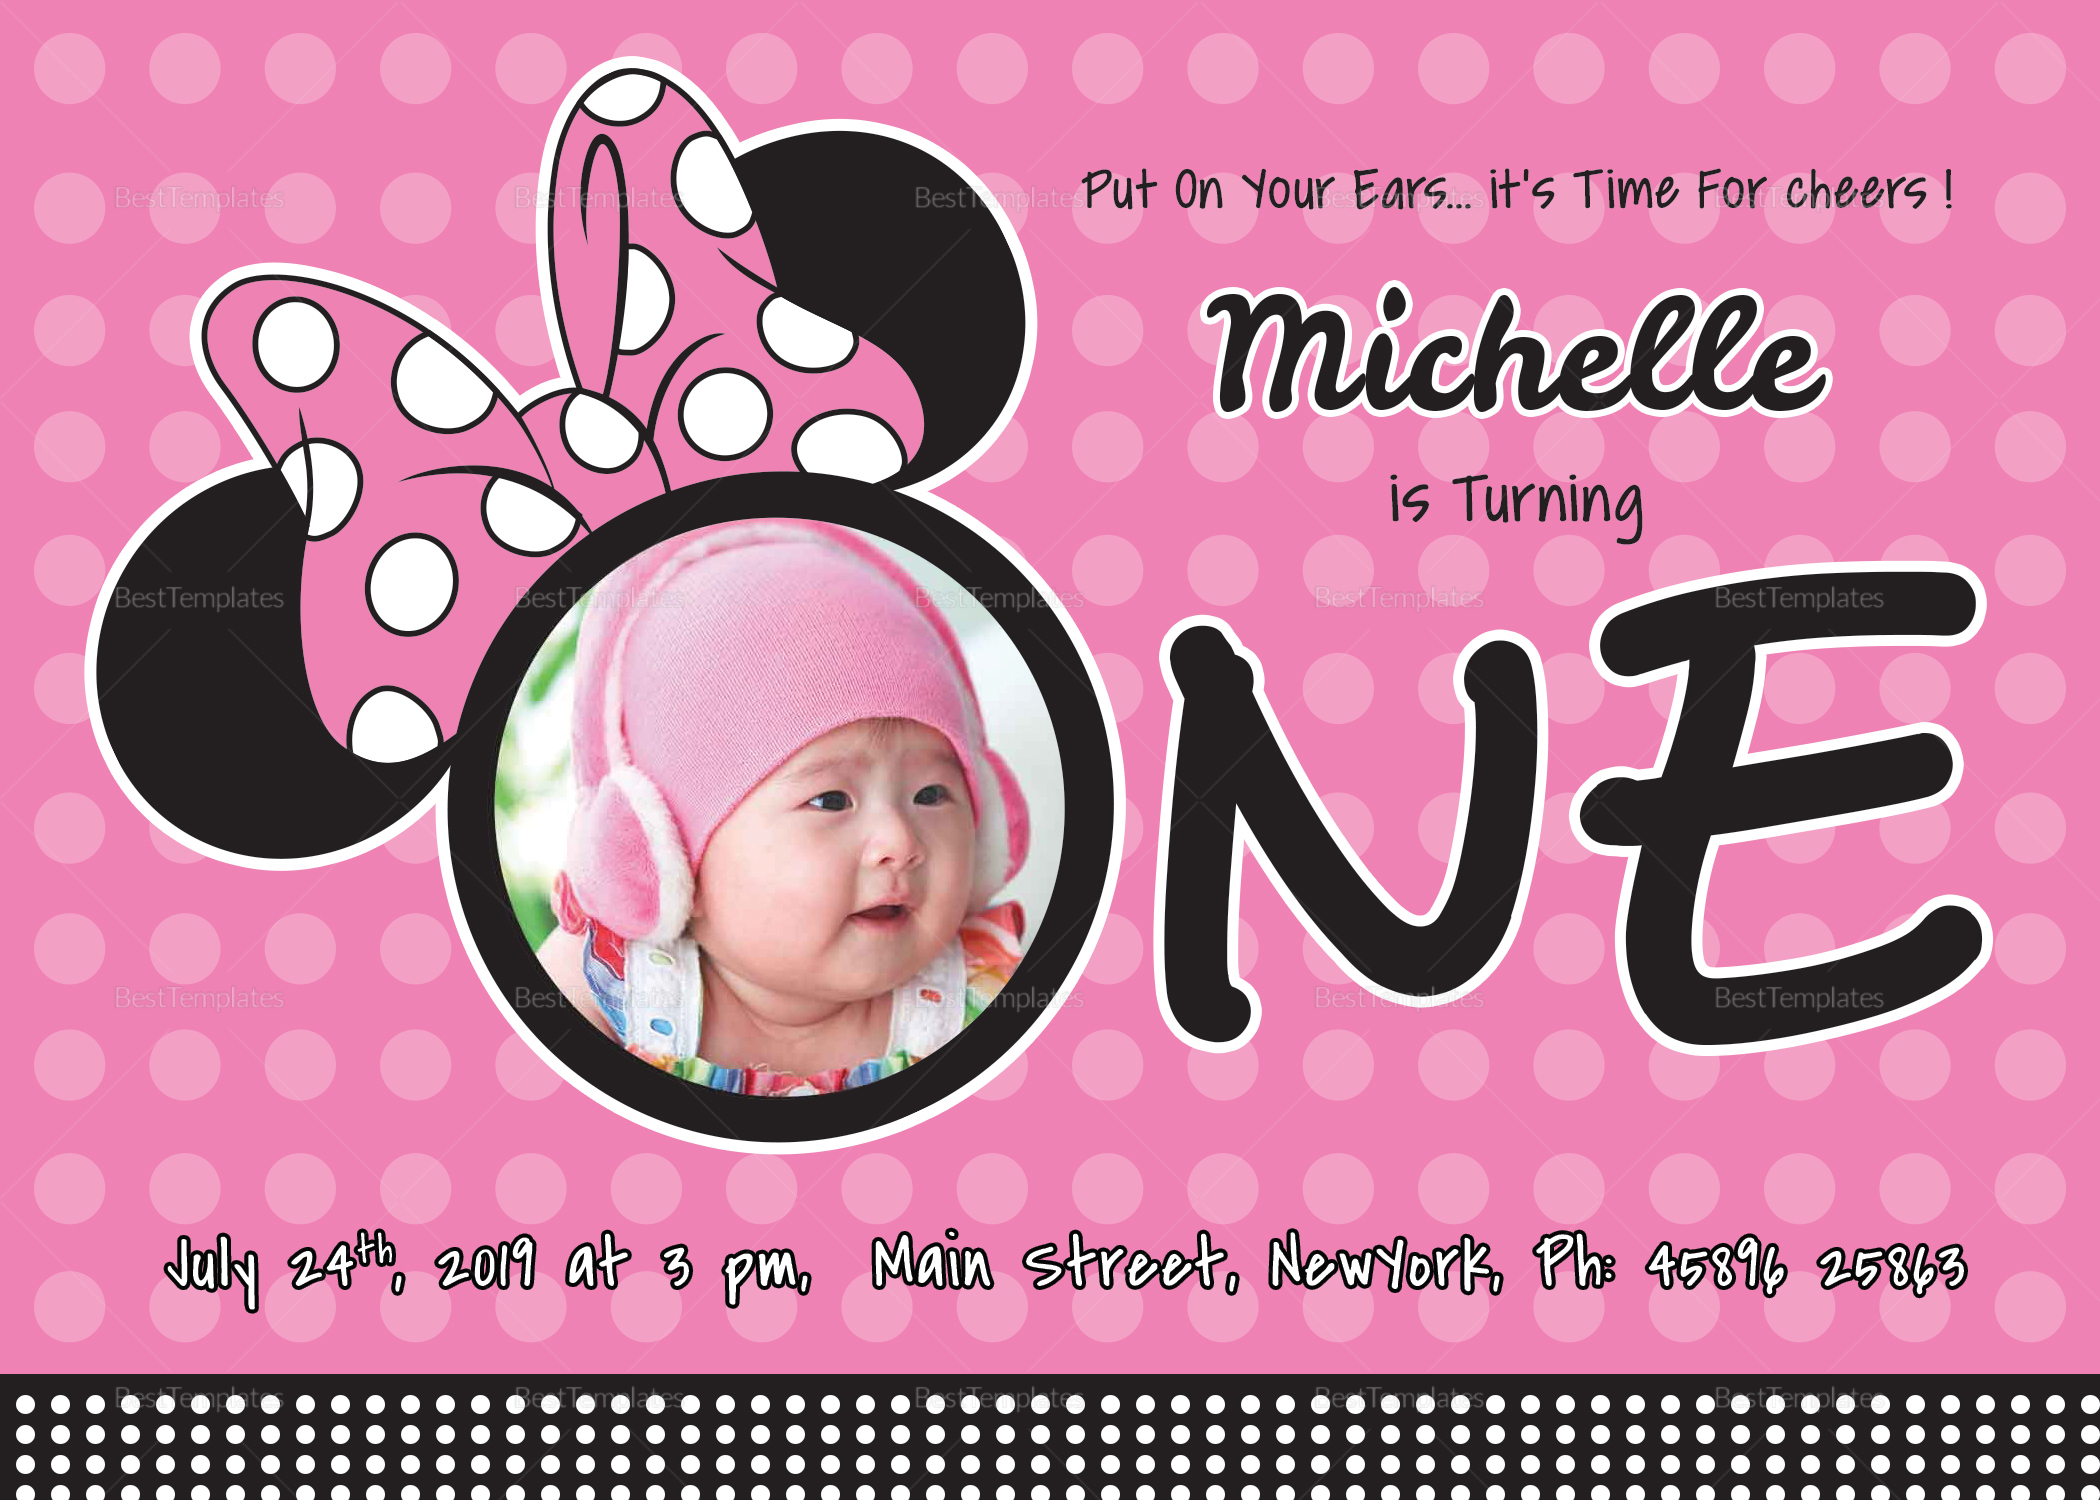 Wonderful Minnie Mouse Birthday Invitation Card Design Template In - Minnie mouse birthday invitation images